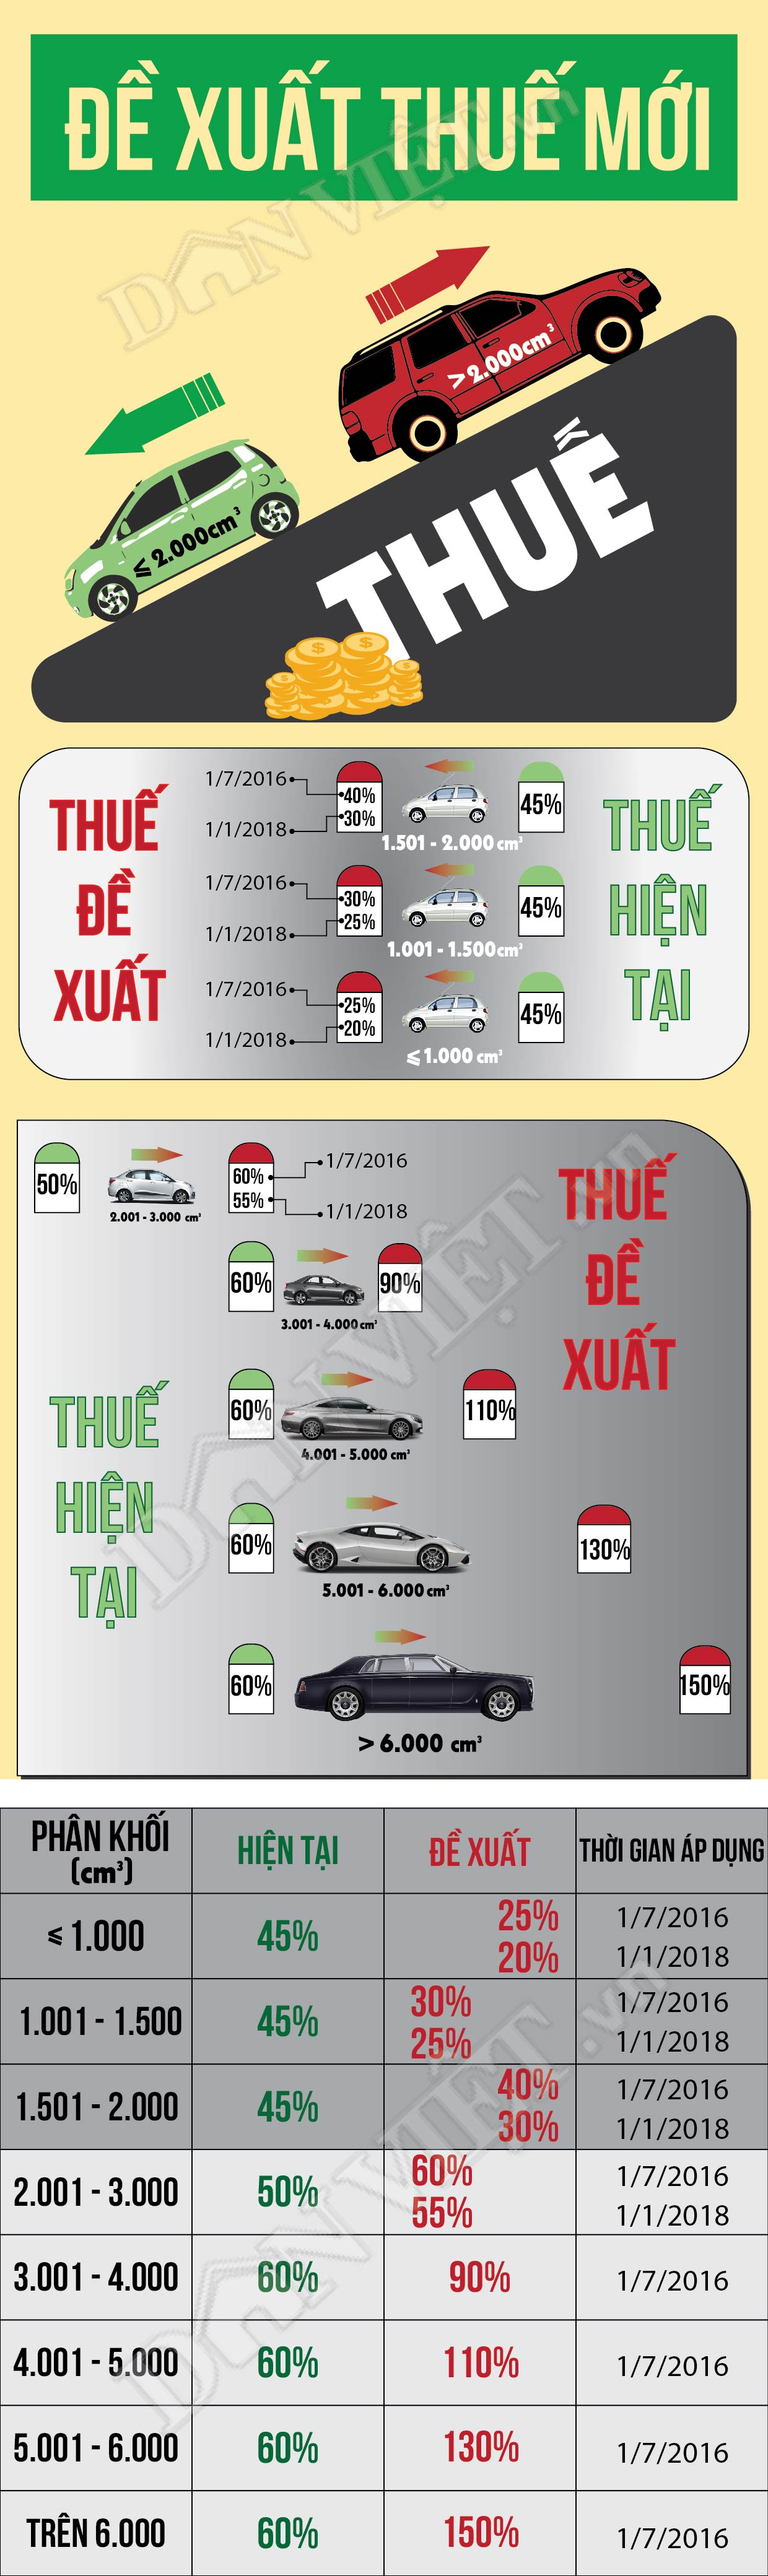 [infographic] giam thue xe o to, mua xe nao re nhat? hinh anh 1